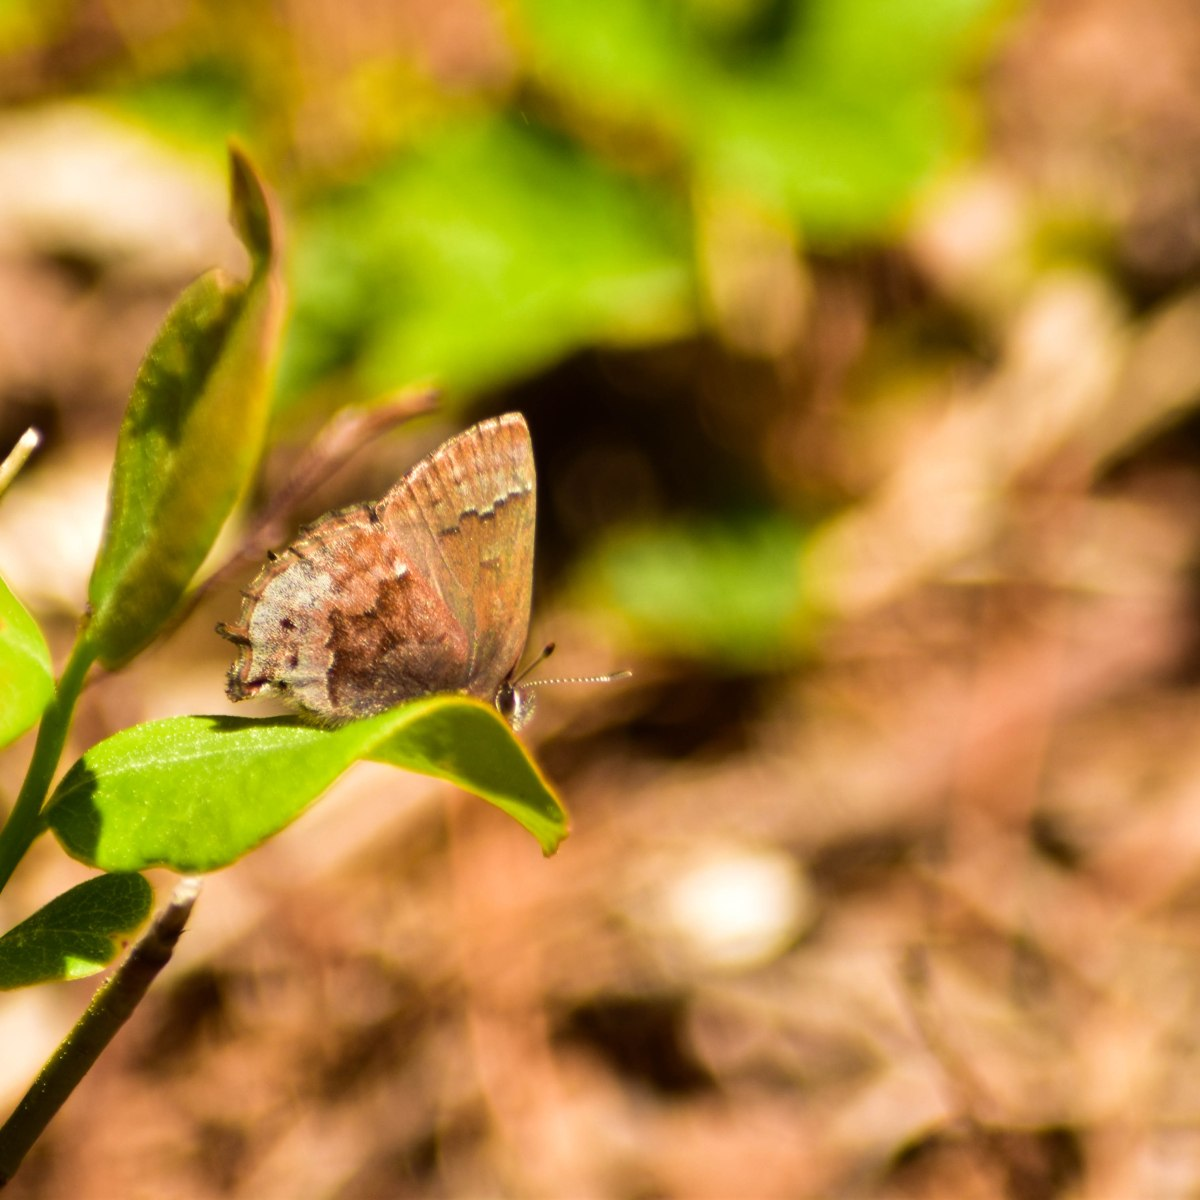 Frosted elfin butterfly on leaf